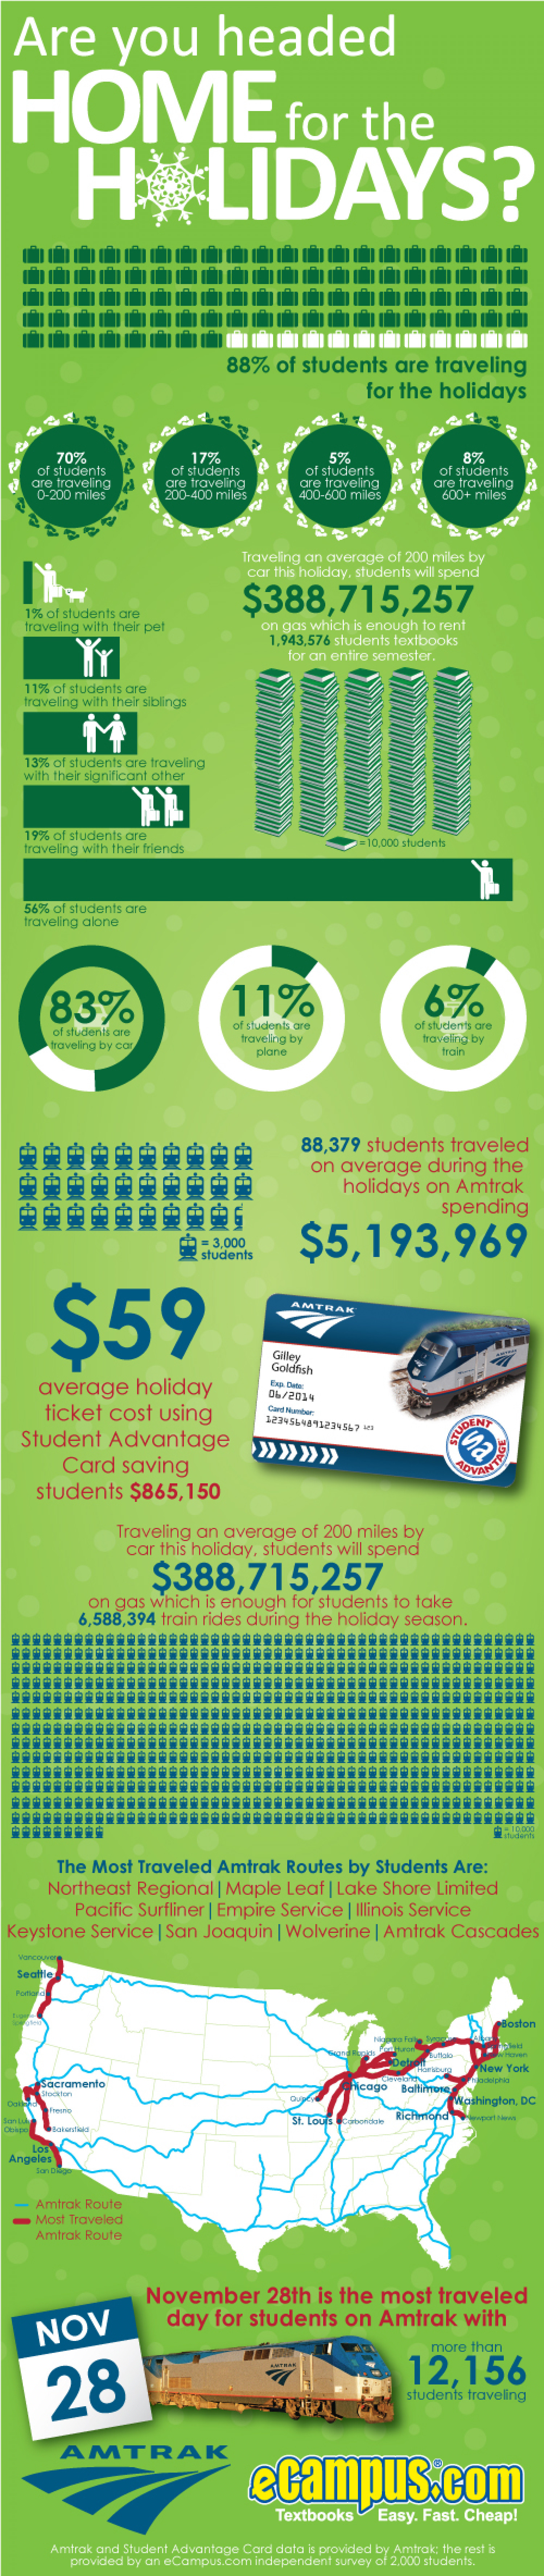 Are you headed Home for the Holidays? Infographic